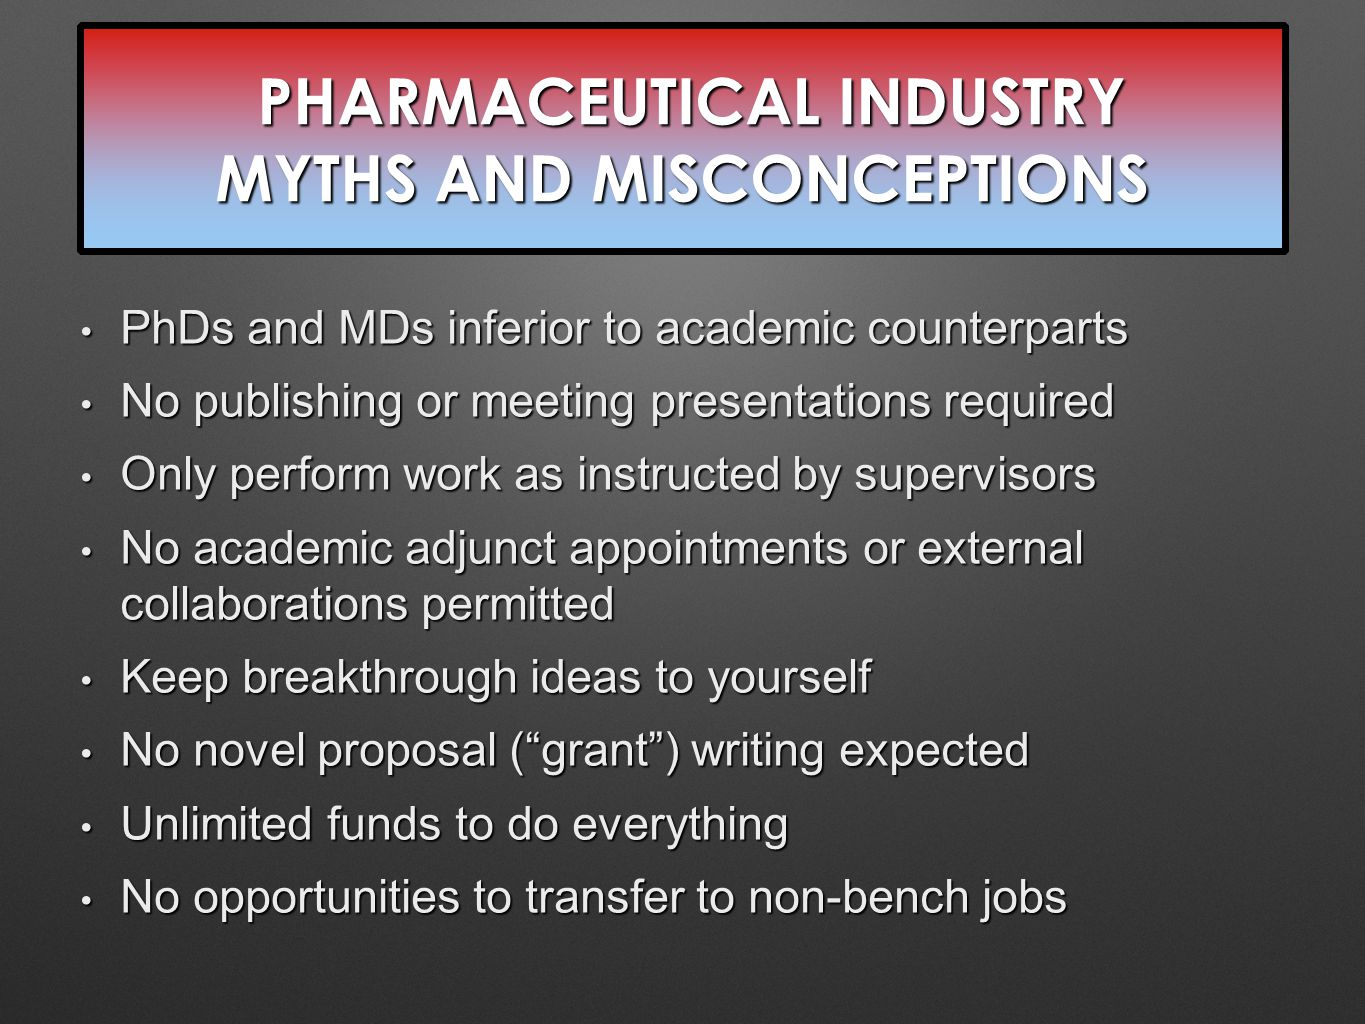 PHARMACEUTICAL INDUSTRY MYTHS AND MISCONCEPTIONS PHARMACEUTICAL INDUSTRY MYTHS AND MISCONCEPTIONS PhDs and MDs inferior to academic counterparts PhDs and MDs inferior to academic counterparts No publishing or meeting presentations required No publishing or meeting presentations required Only perform work as instructed by supervisors Only perform work as instructed by supervisors No academic adjunct appointments or external collaborations permitted No academic adjunct appointments or external collaborations permitted Keep breakthrough ideas to yourself Keep breakthrough ideas to yourself No novel proposal ( grant ) writing expected No novel proposal ( grant ) writing expected Unlimited funds to do everything Unlimited funds to do everything No opportunities to transfer to non-bench jobs No opportunities to transfer to non-bench jobs